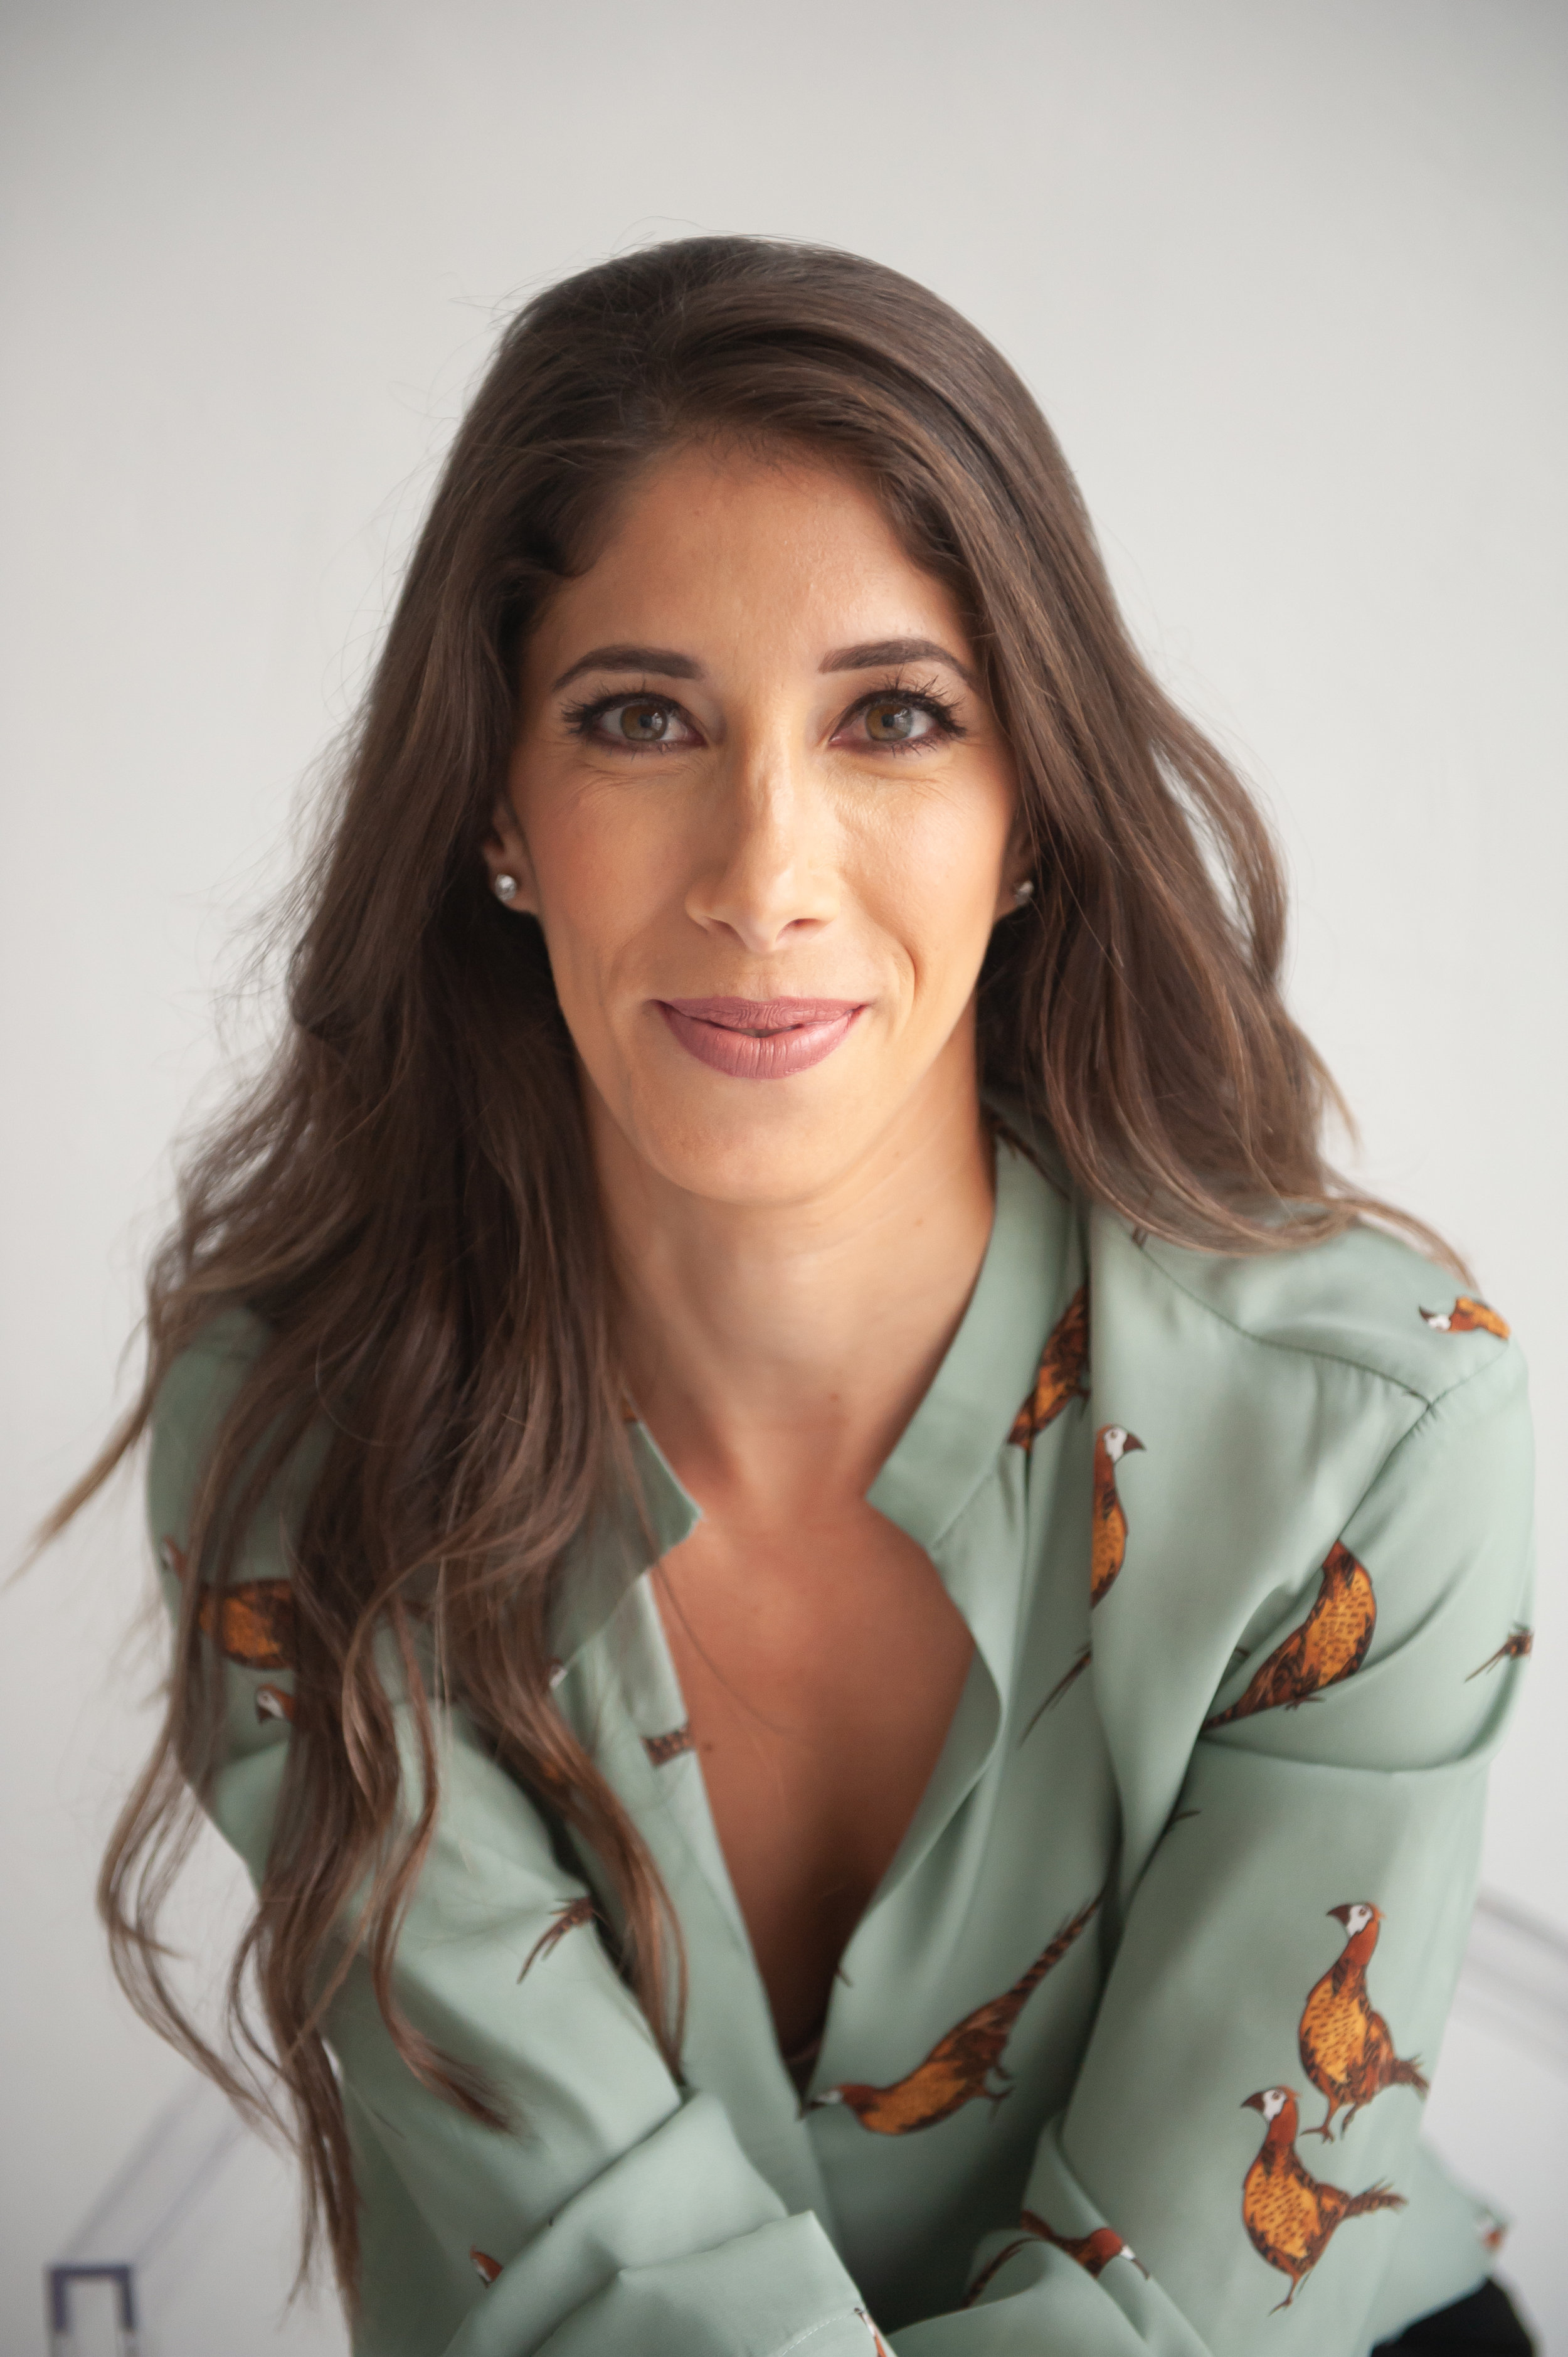 about SHIRA - I was born in Israel and raised in Dallas, Texas. South Florida has been my home for the past 10 years. I am a wife and a mother to two adorable children 5 and 2. Being a mom and a pediatric speech language pathologist, I learned the importance of being organized. I am very passionate about organization because I believe that it increases productivity and reduces stress. After being a speech-language pathologist for a decade, I decided to embark on a new adventure and turn one of my passions into a business and opened Organize Dwell, a professional organizing business with my sister-in- law.instagram: @organize_dwell